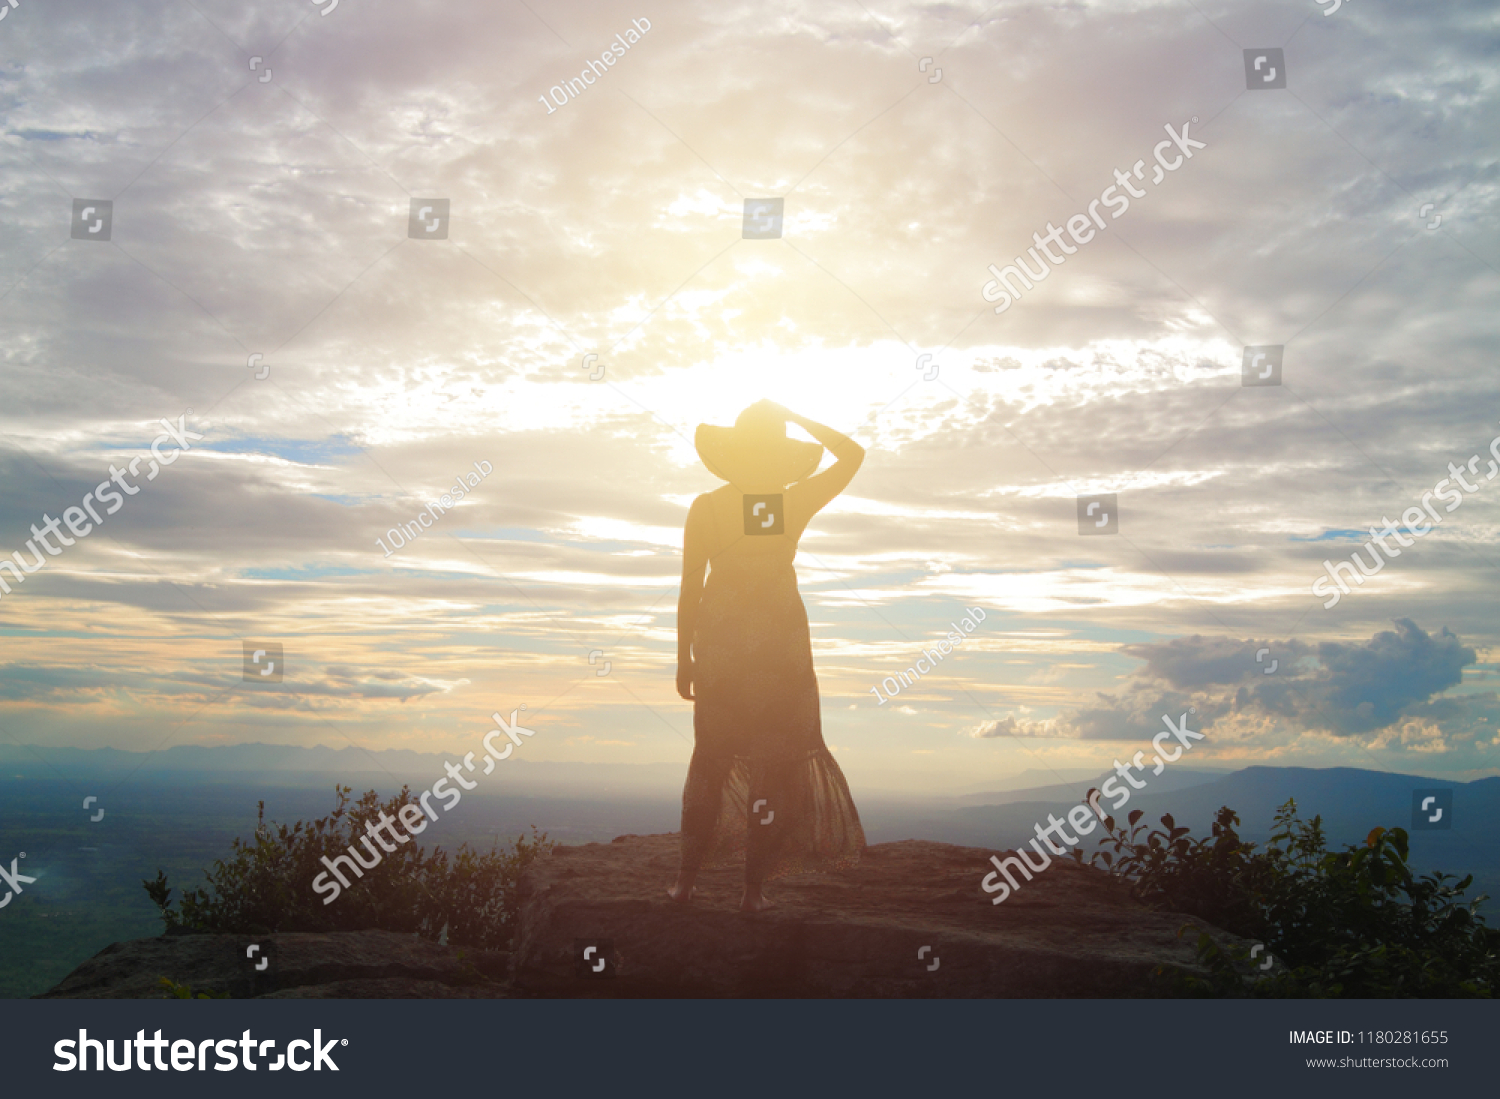 Woman in dress standing alone on mountain top viewpoint looking at sunset behind cloudy sky mountain